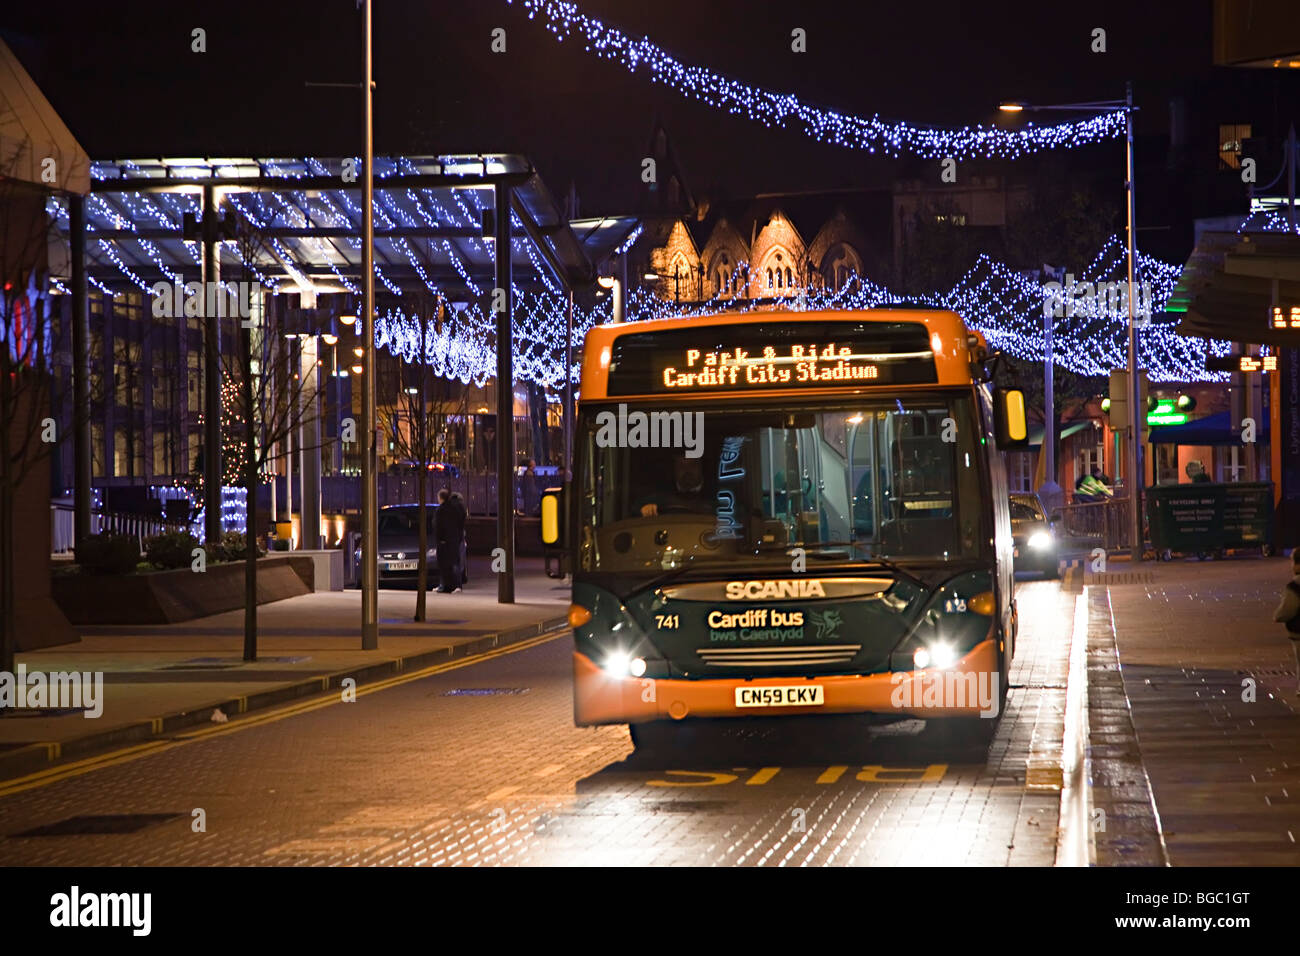 Public transport bus at night in city centre with Christmas decorations Cardiff Wales UK - Stock Image